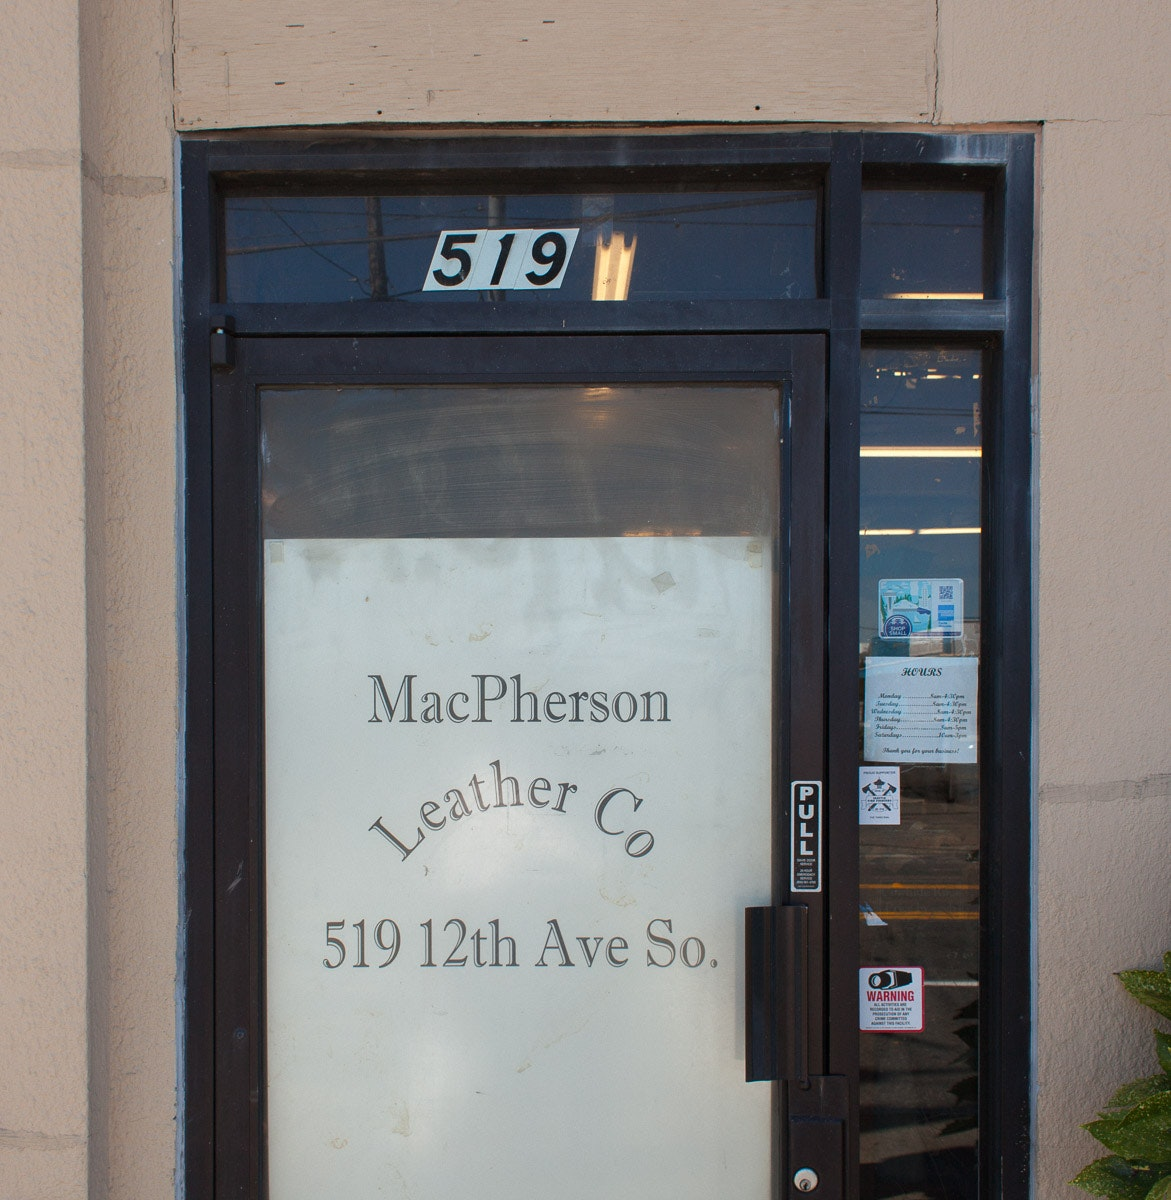 MacPherson Leather Co